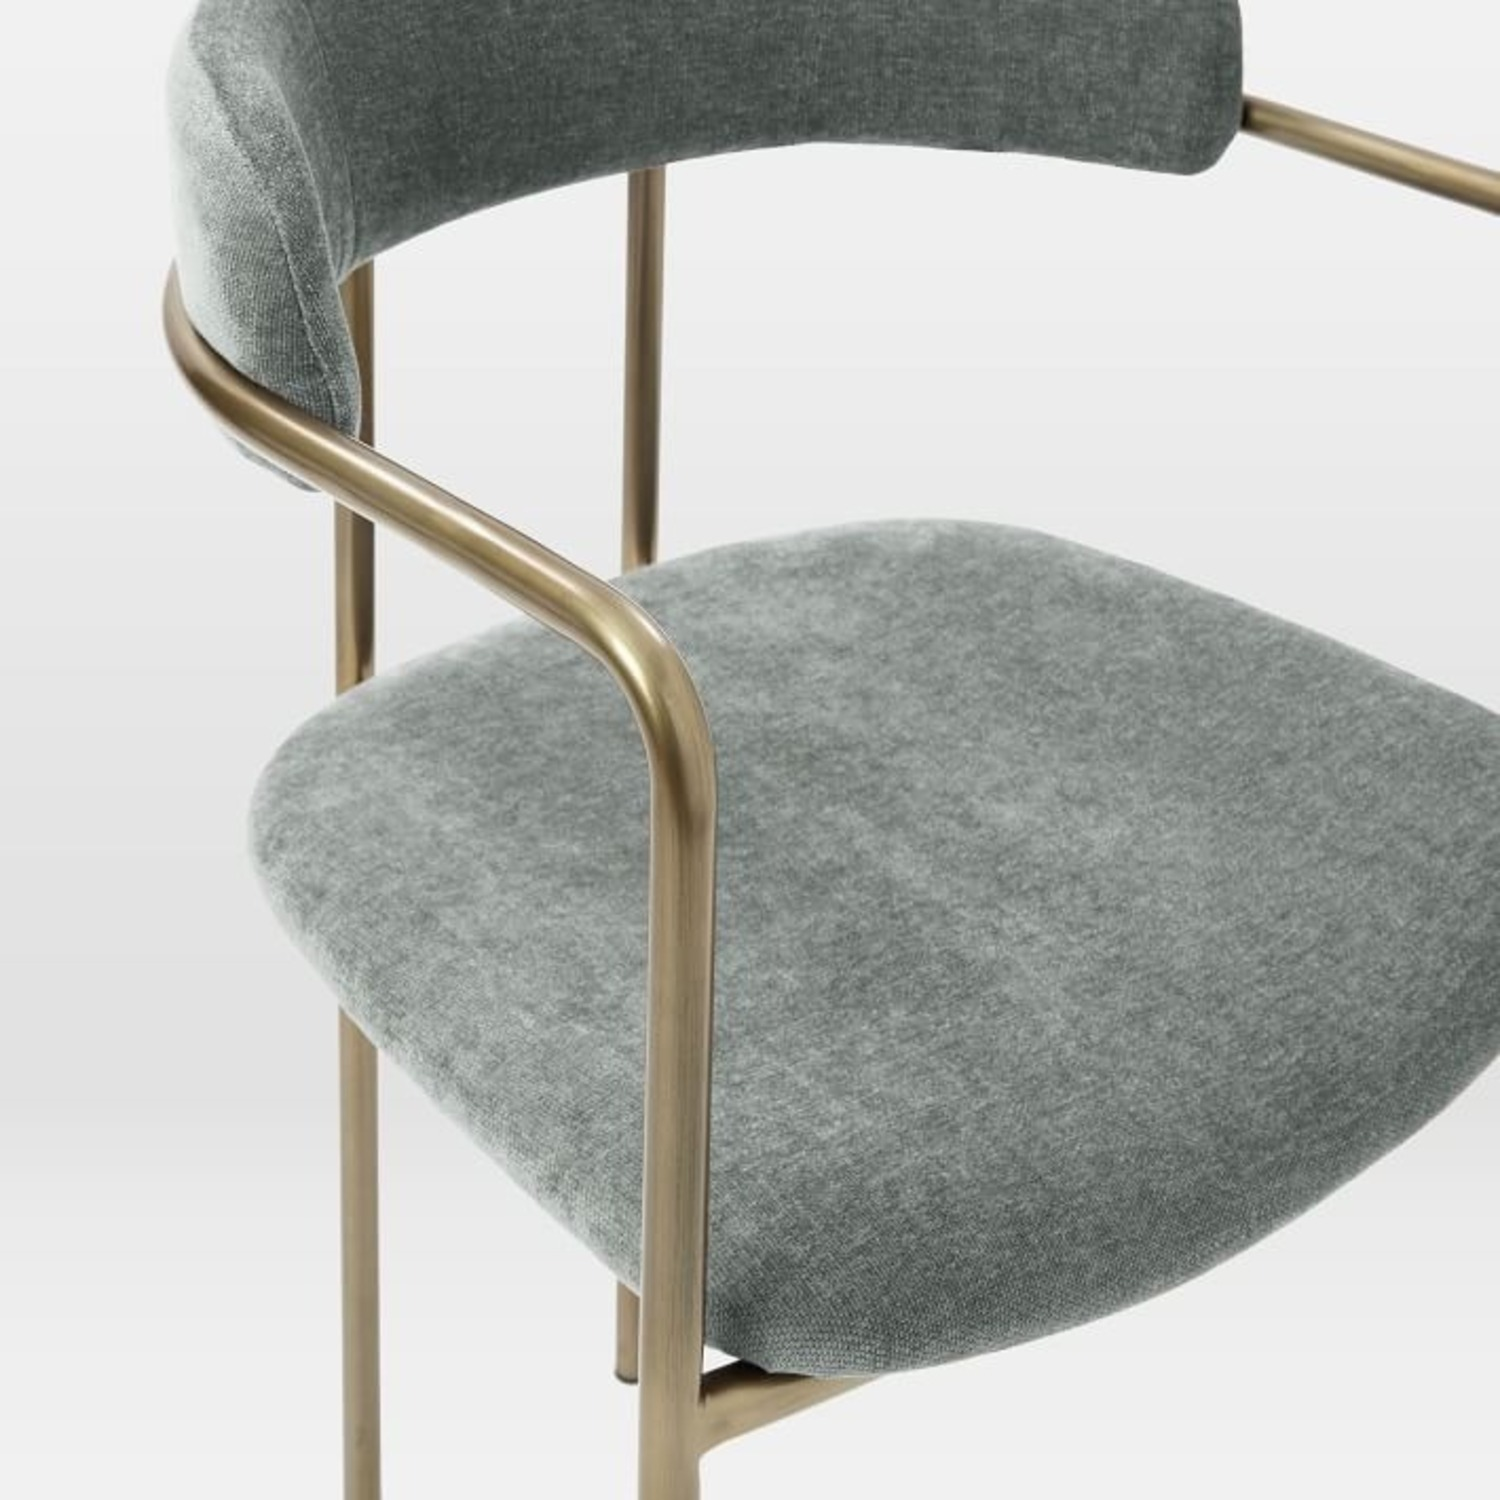 West Elm Lenox Upholstered Dining Chair - image-2